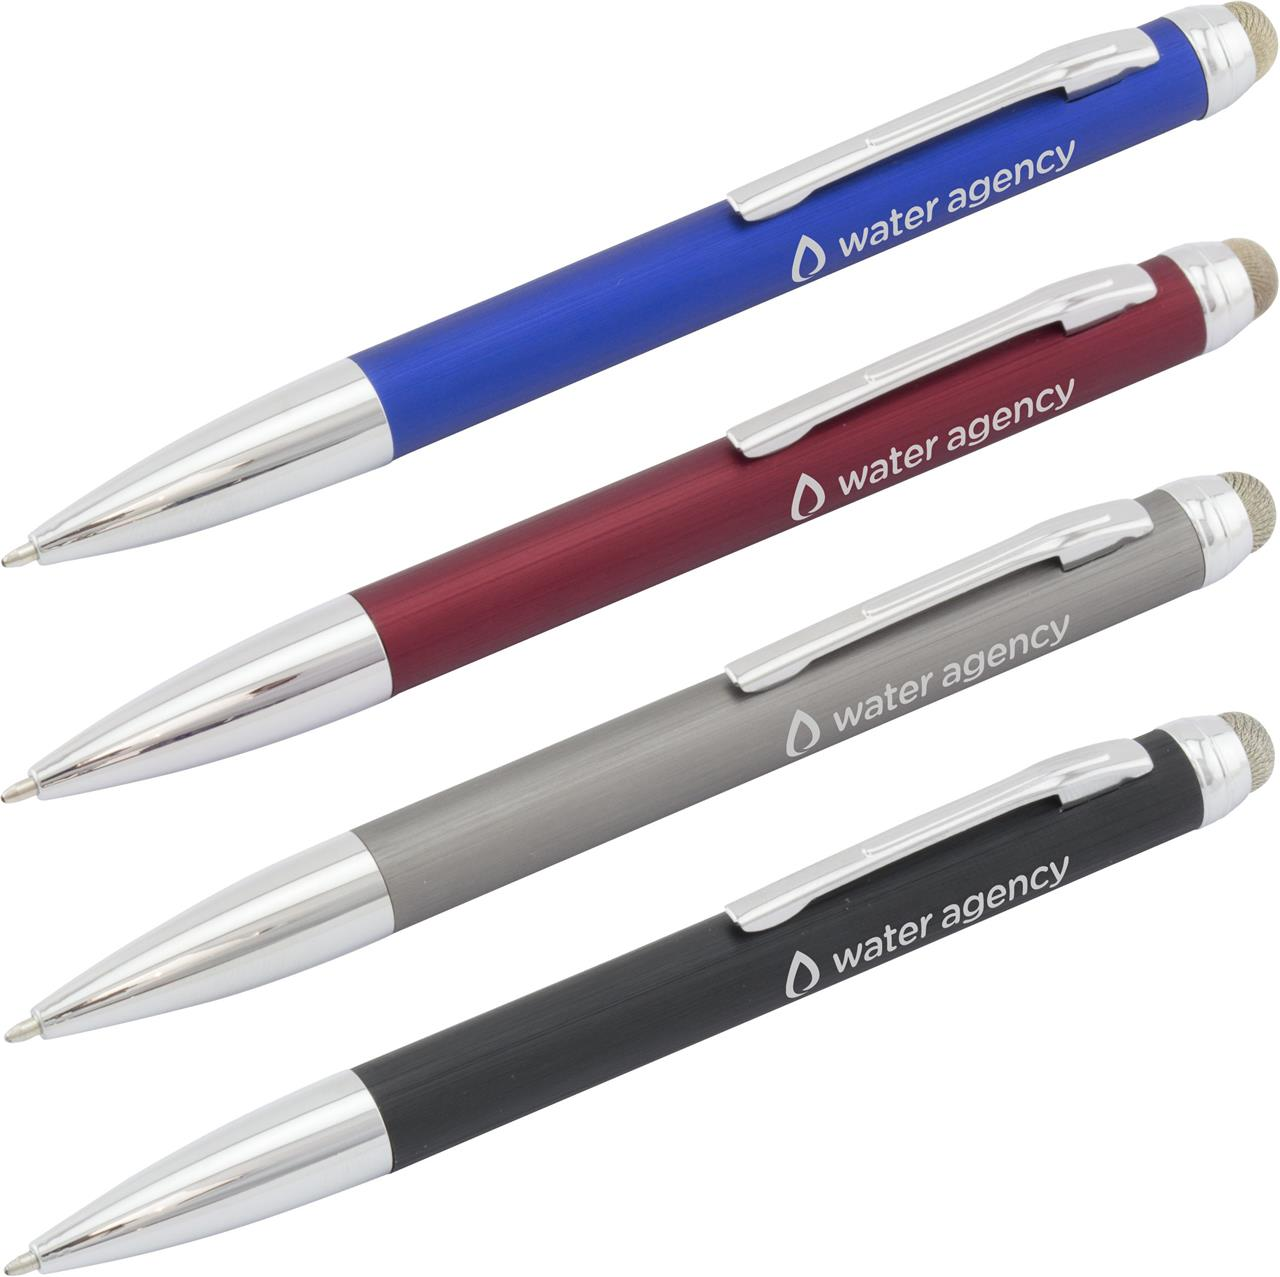 Promotional Product MD Stylus Pen